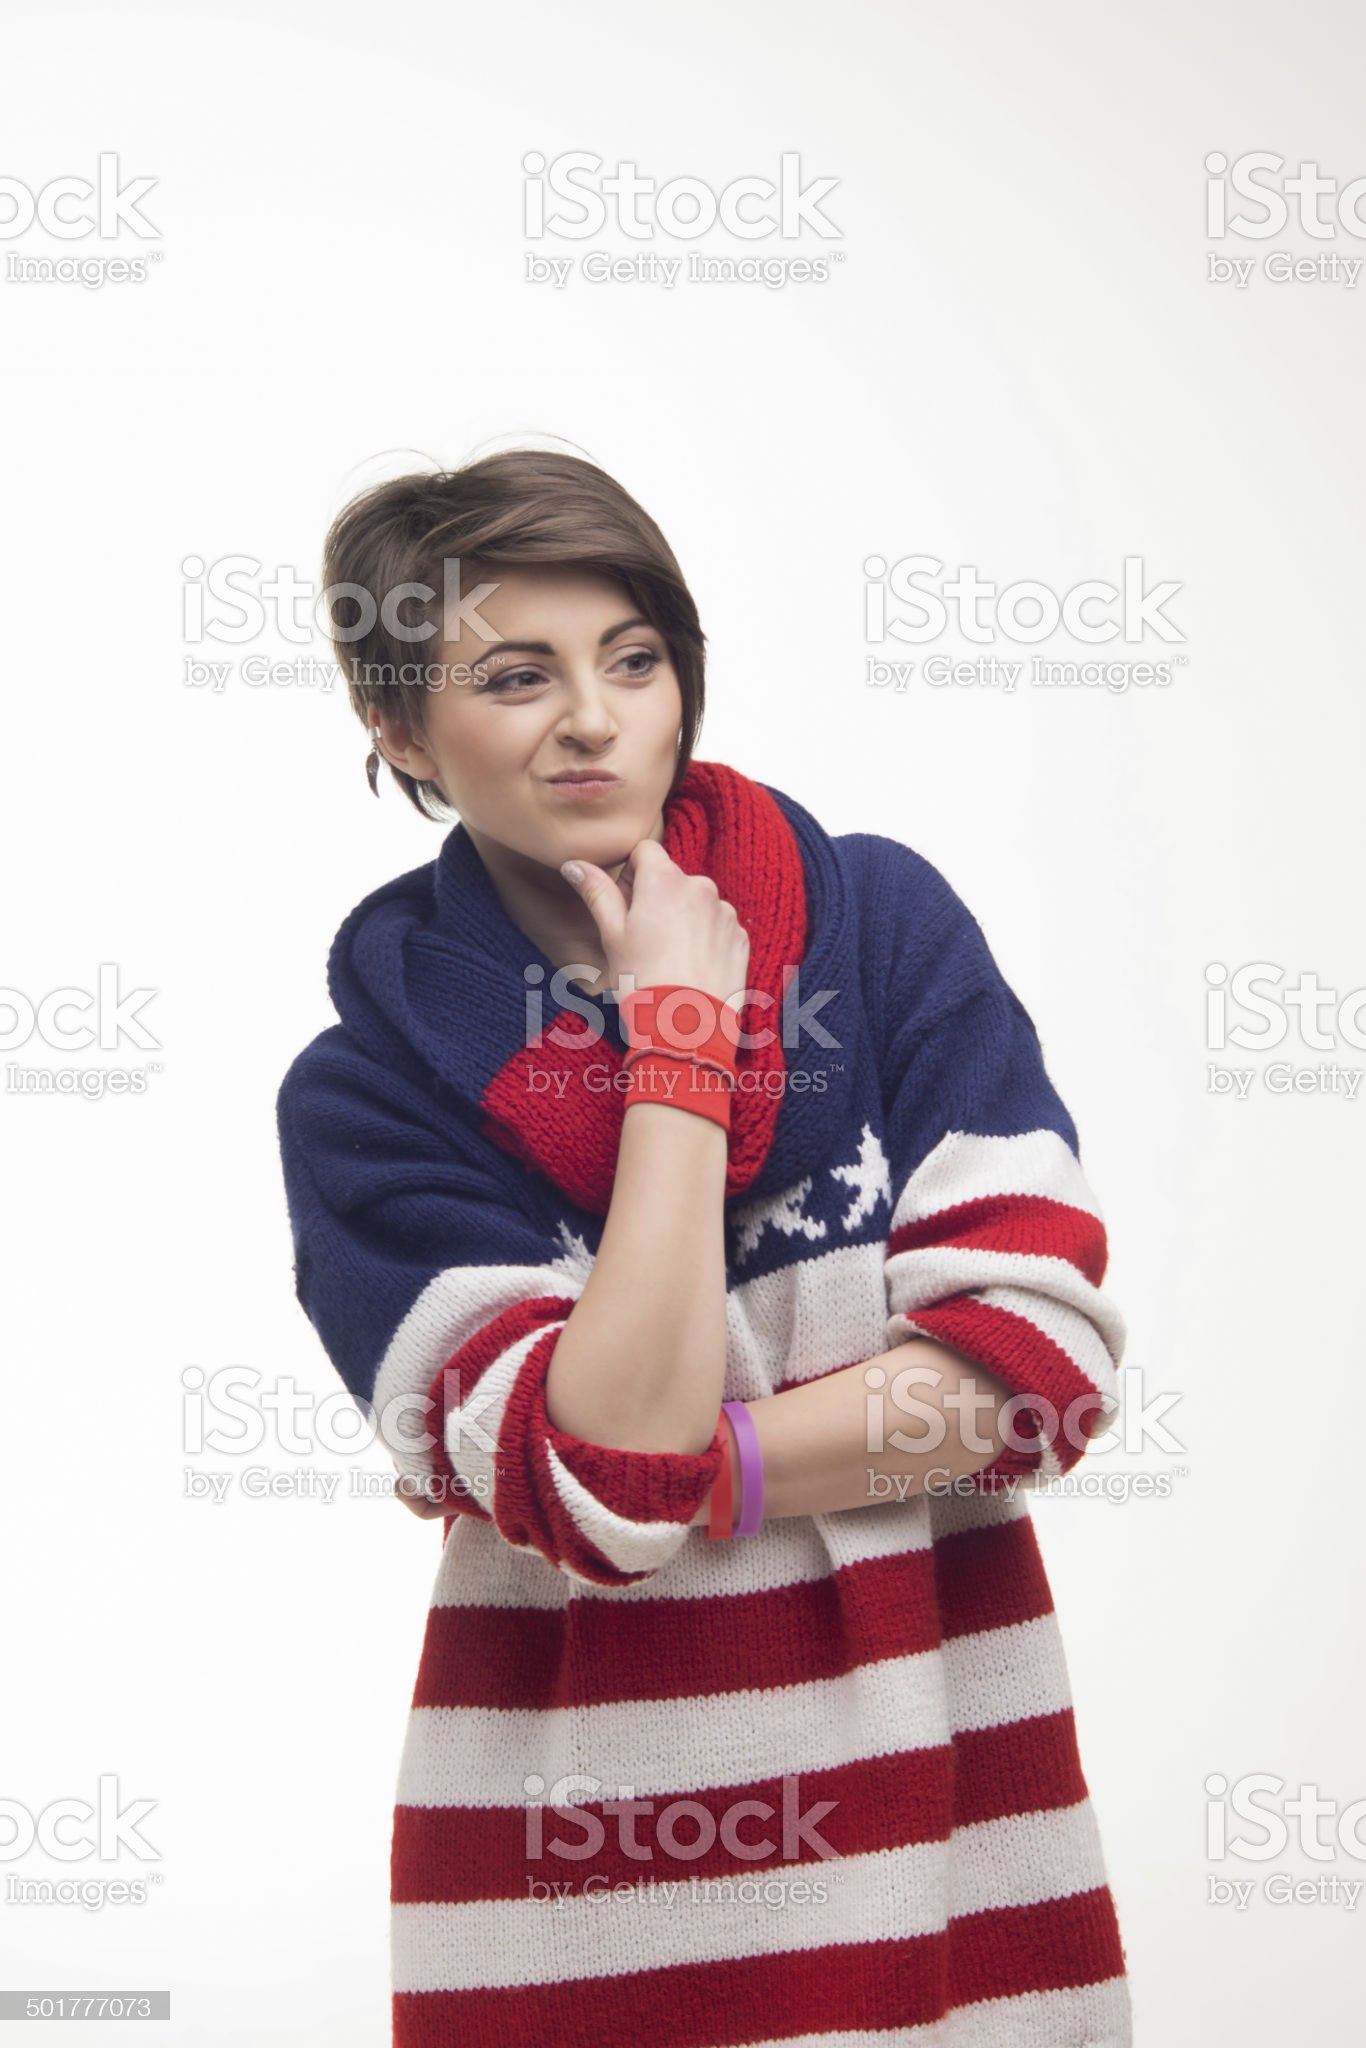 young woman in a striped pullover royalty-free stock photo